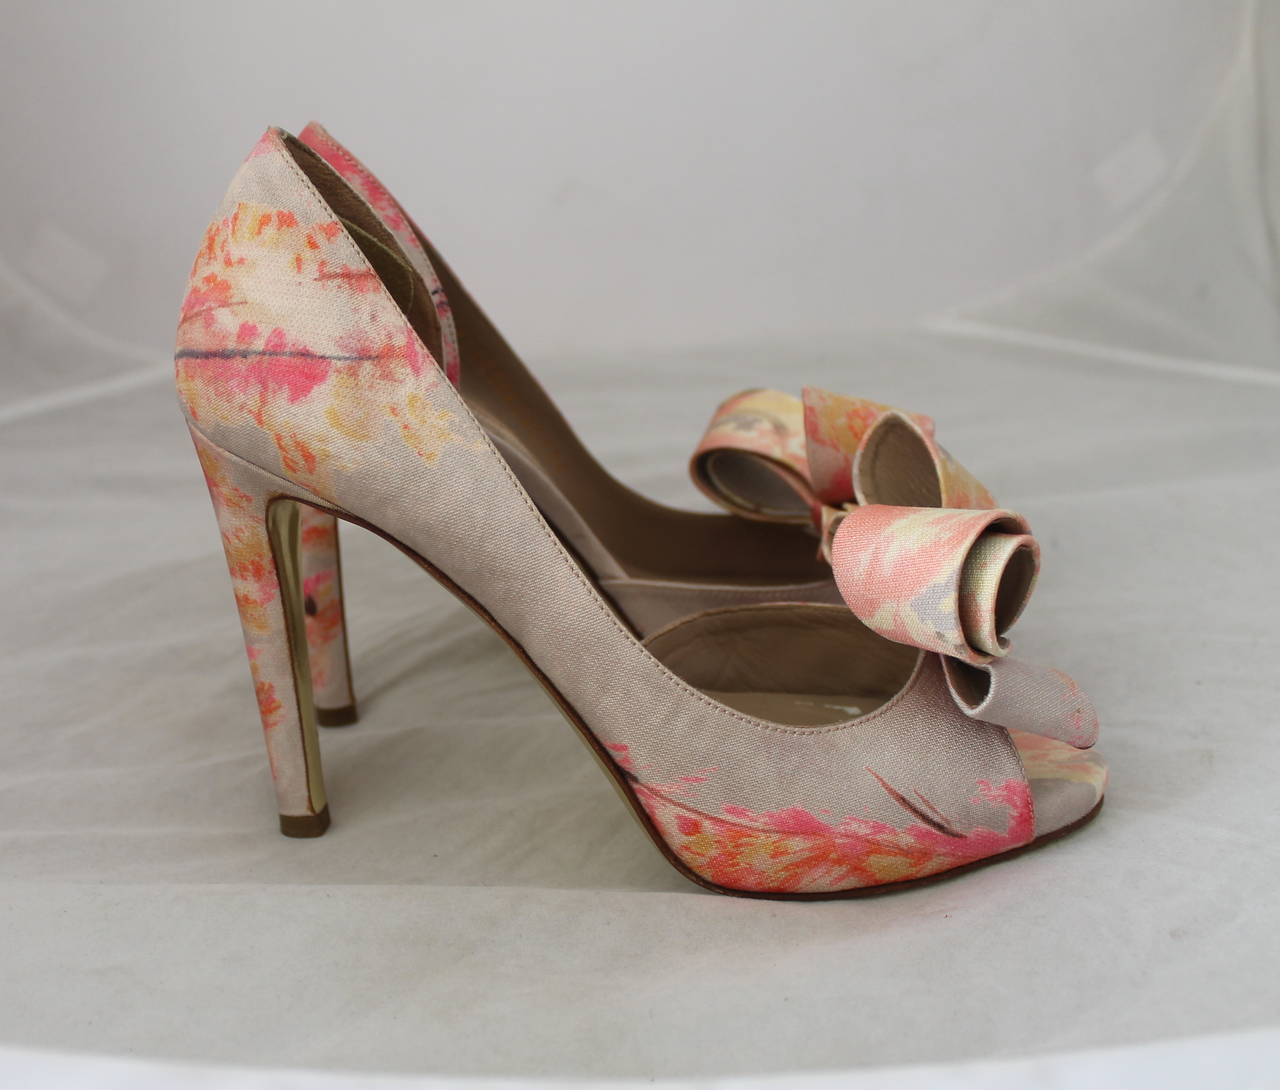 Valentino Tan & Pastel Pink Printed Bow Heels - 36 In Excellent Condition For Sale In Palm Beach, FL